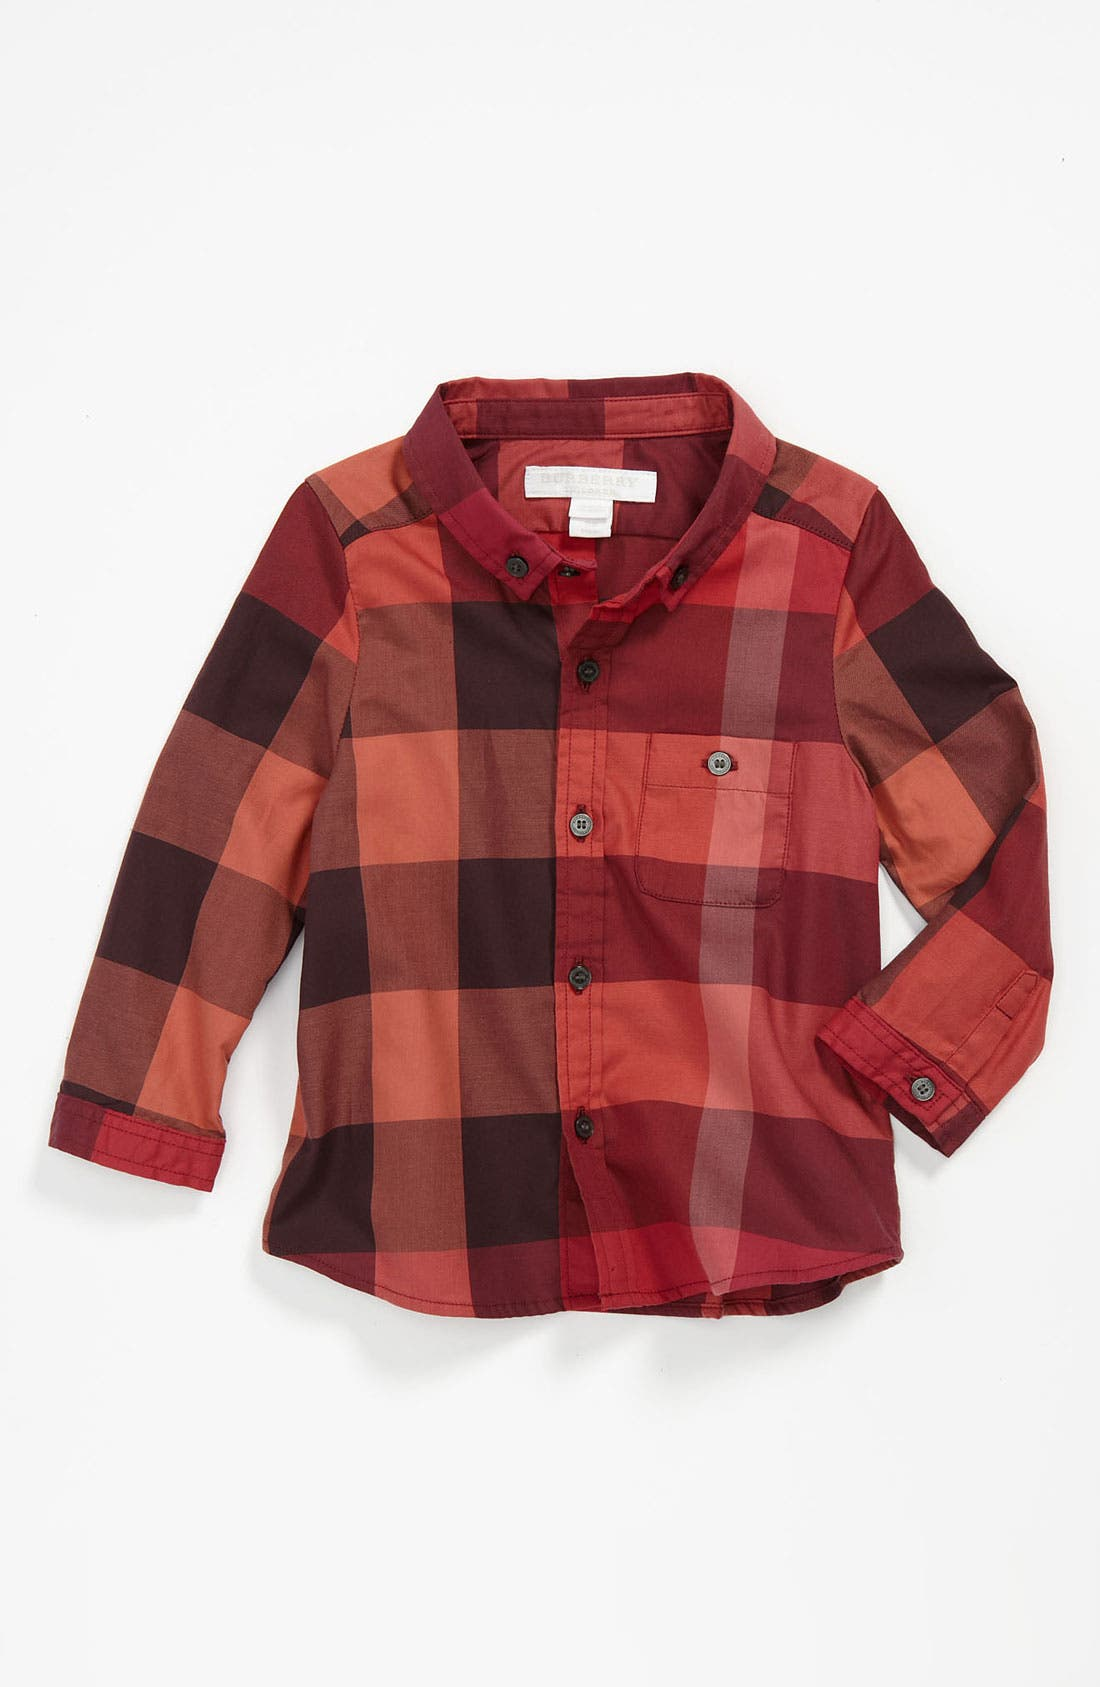 Main Image - Burberry 'Trauls' Woven Shirt (Toddler)